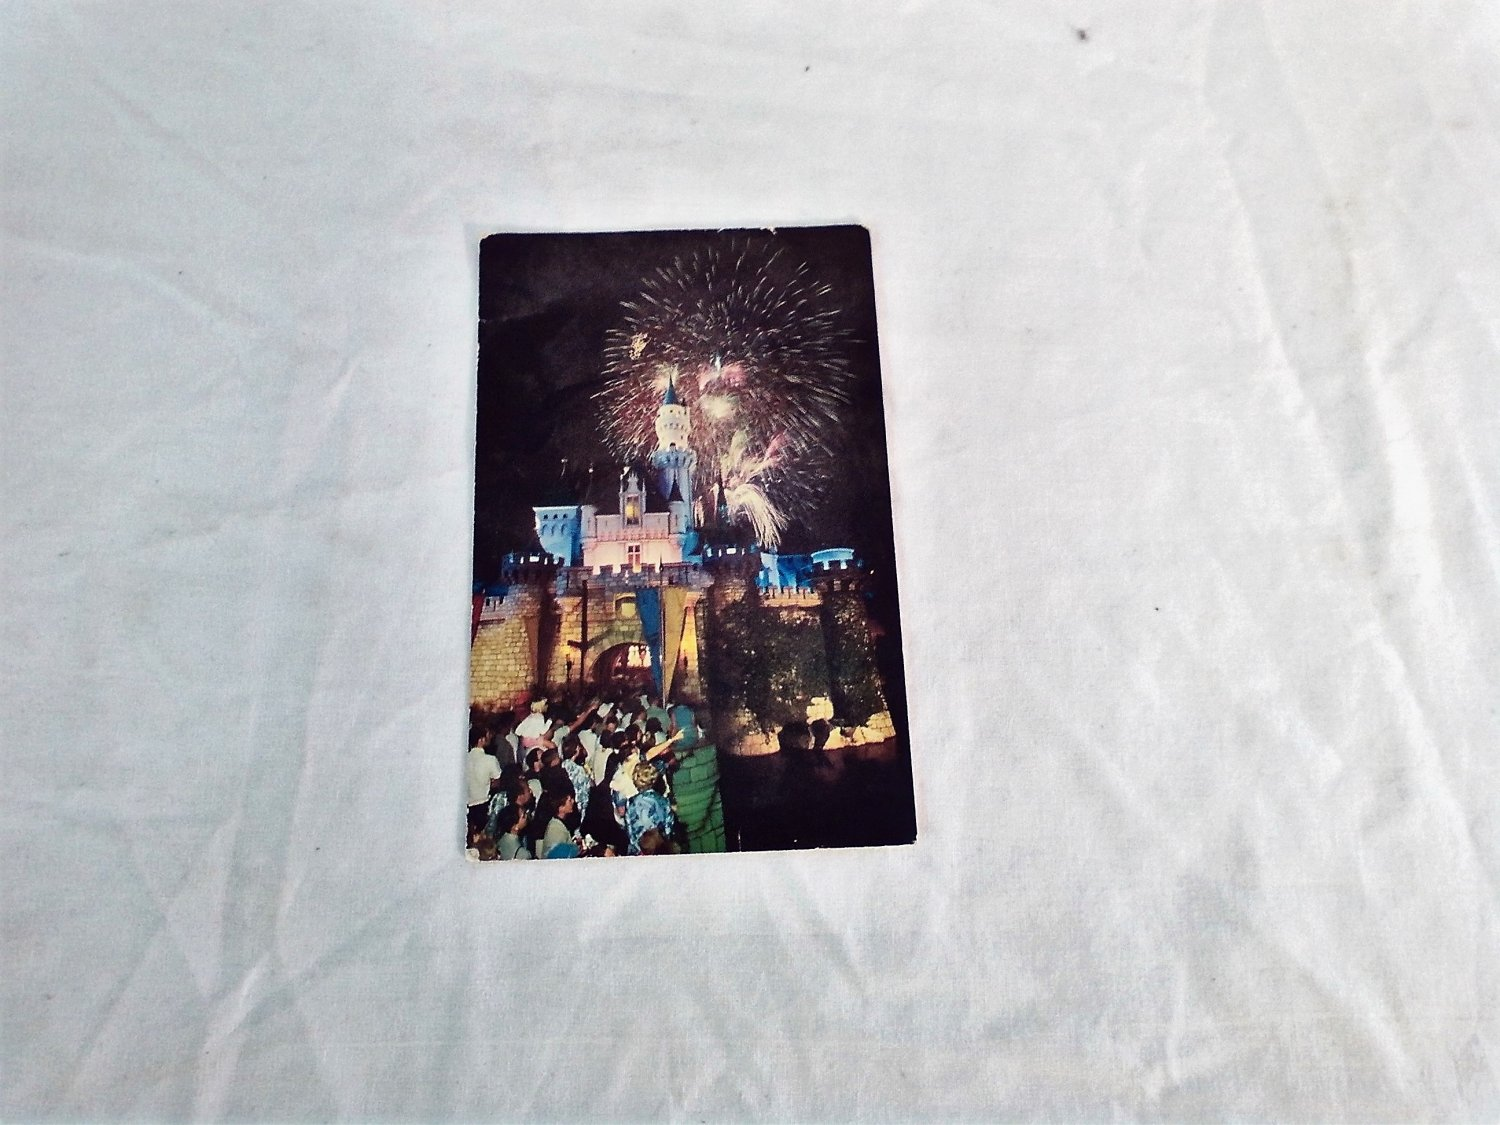 Disneyland FANTASY IN THE SKY Postcard Fireworks over the Castle in Anaheim California